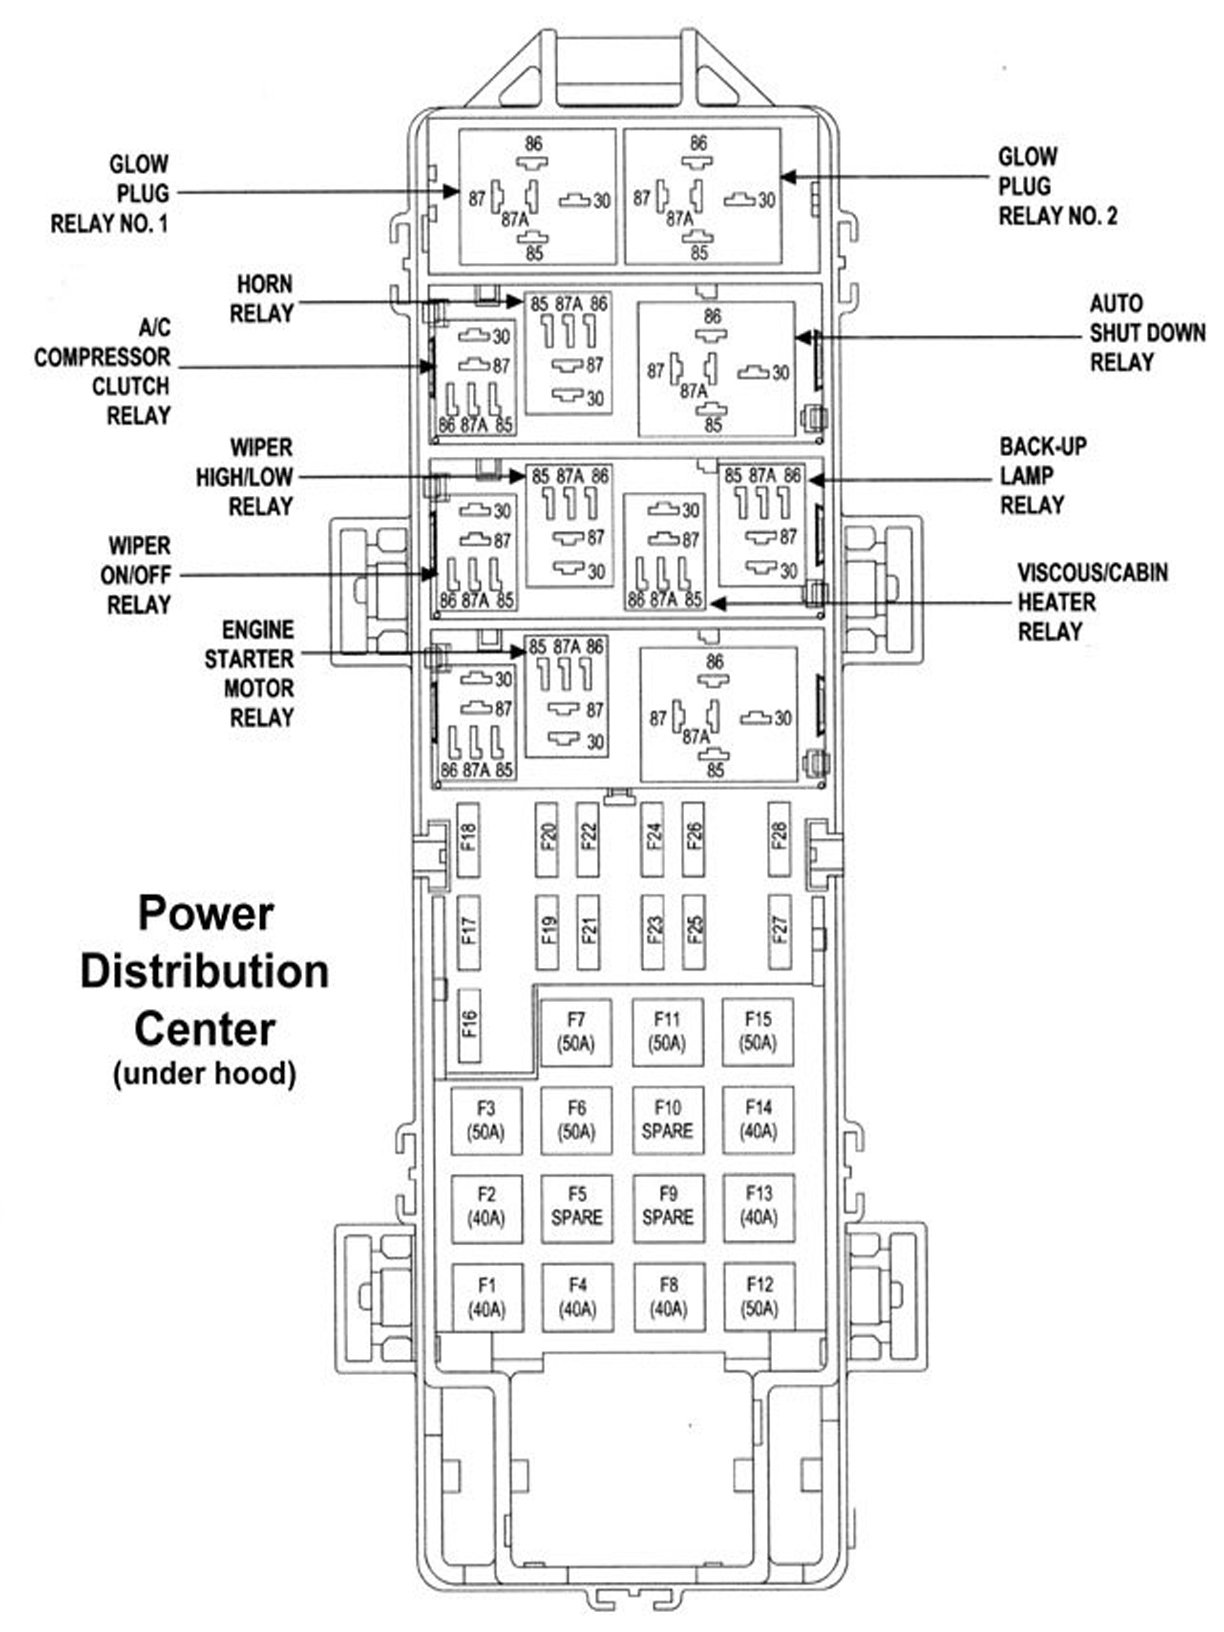 Jeep Grand Cherokee 1999 2004 Fuse Box Diagram 397760 on 2004 jeep liberty fuse panel